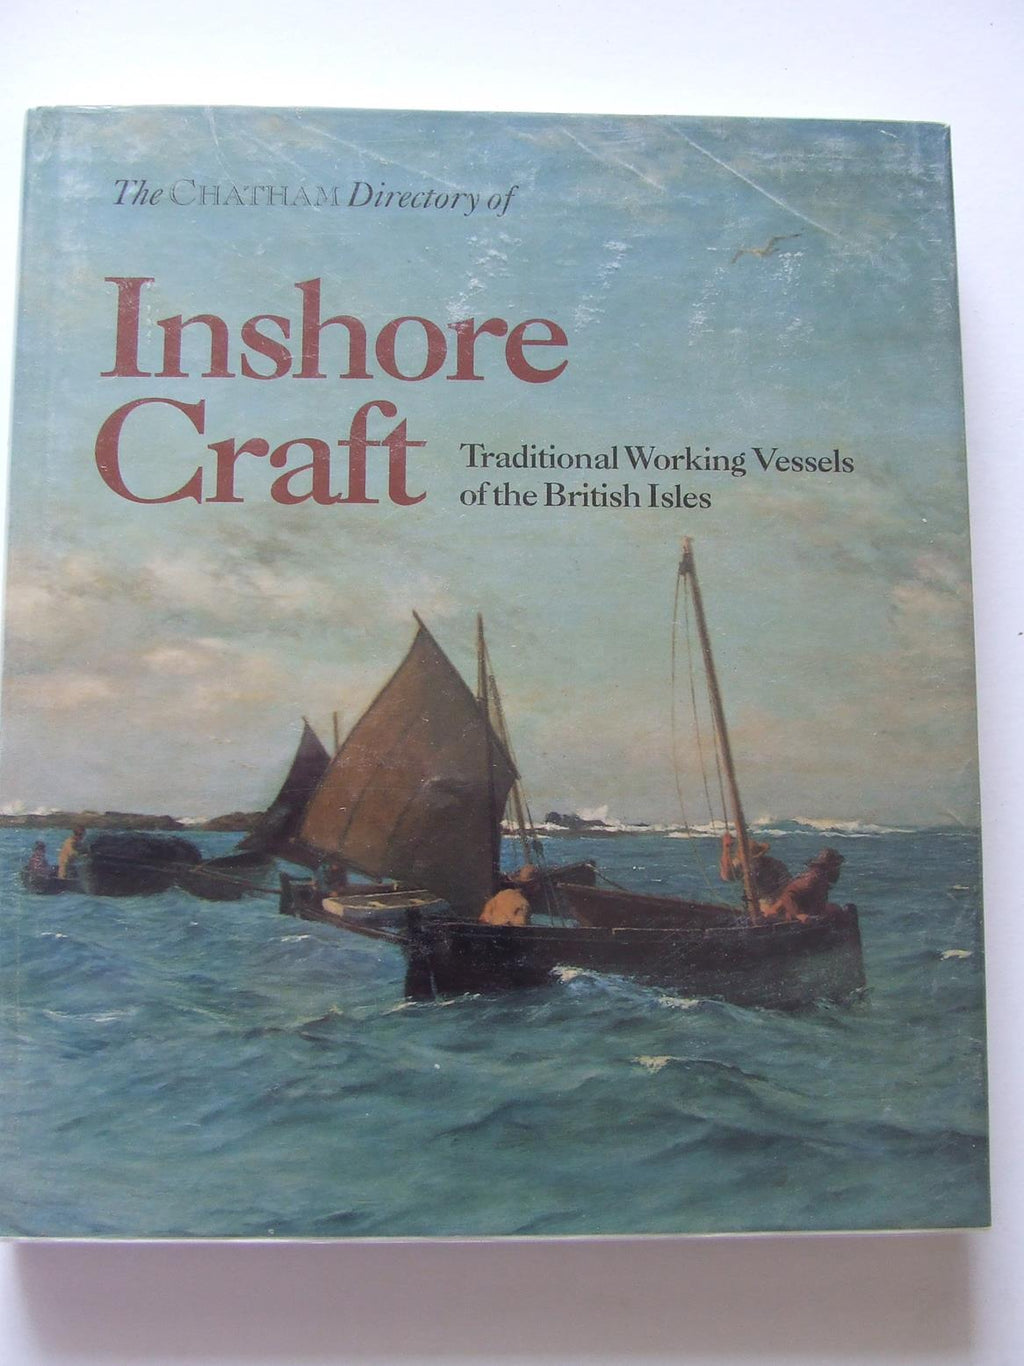 The Chatham Directory of Inshore Craft